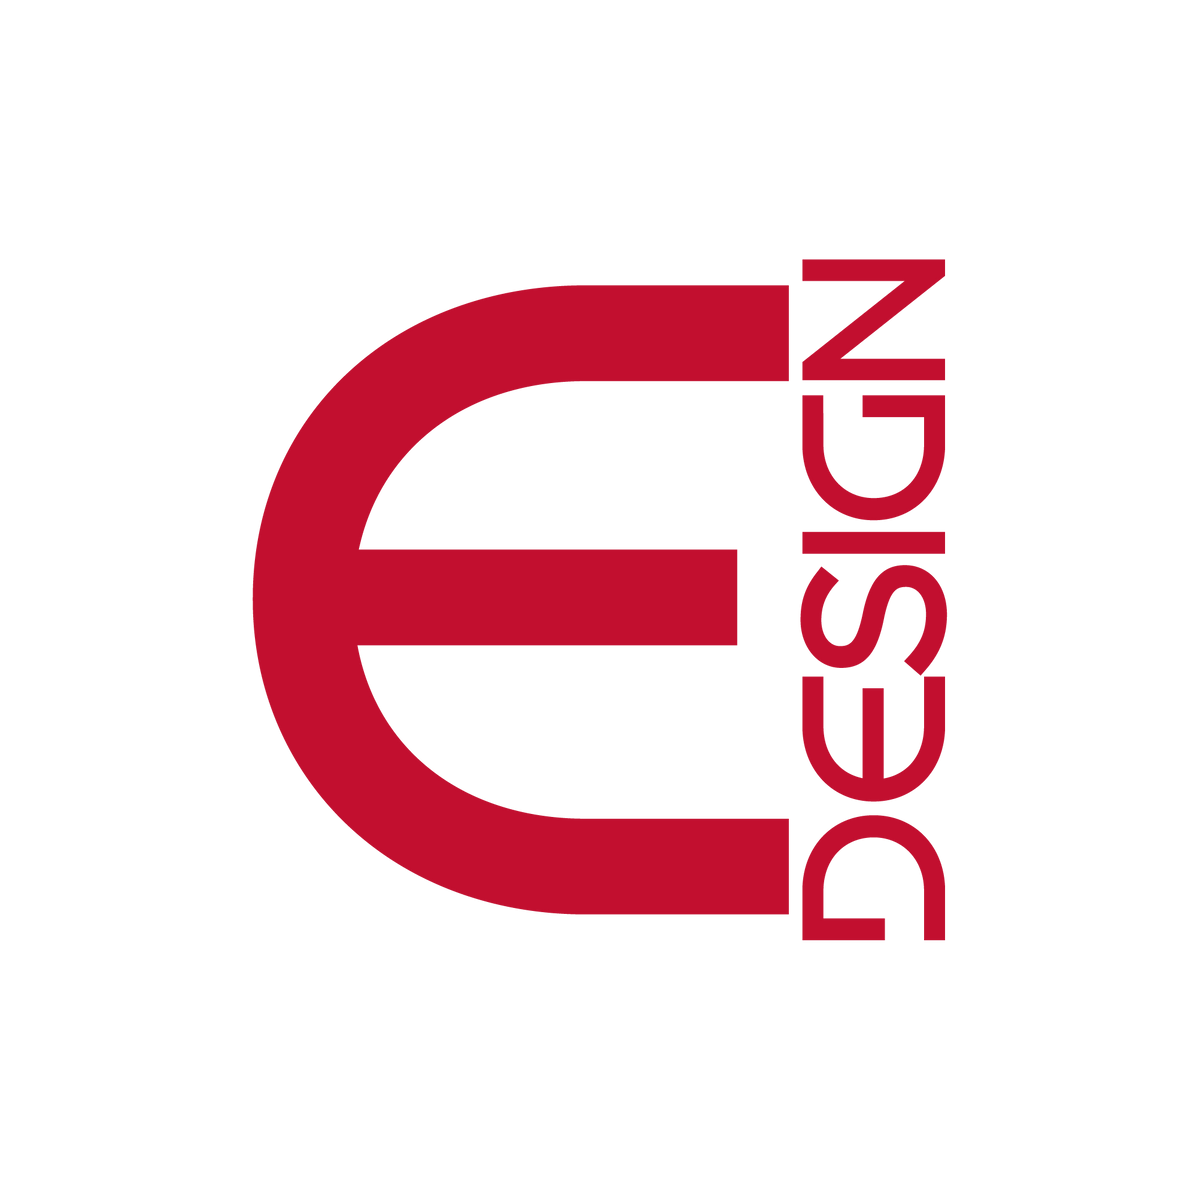 Edge Design Simplified Logo